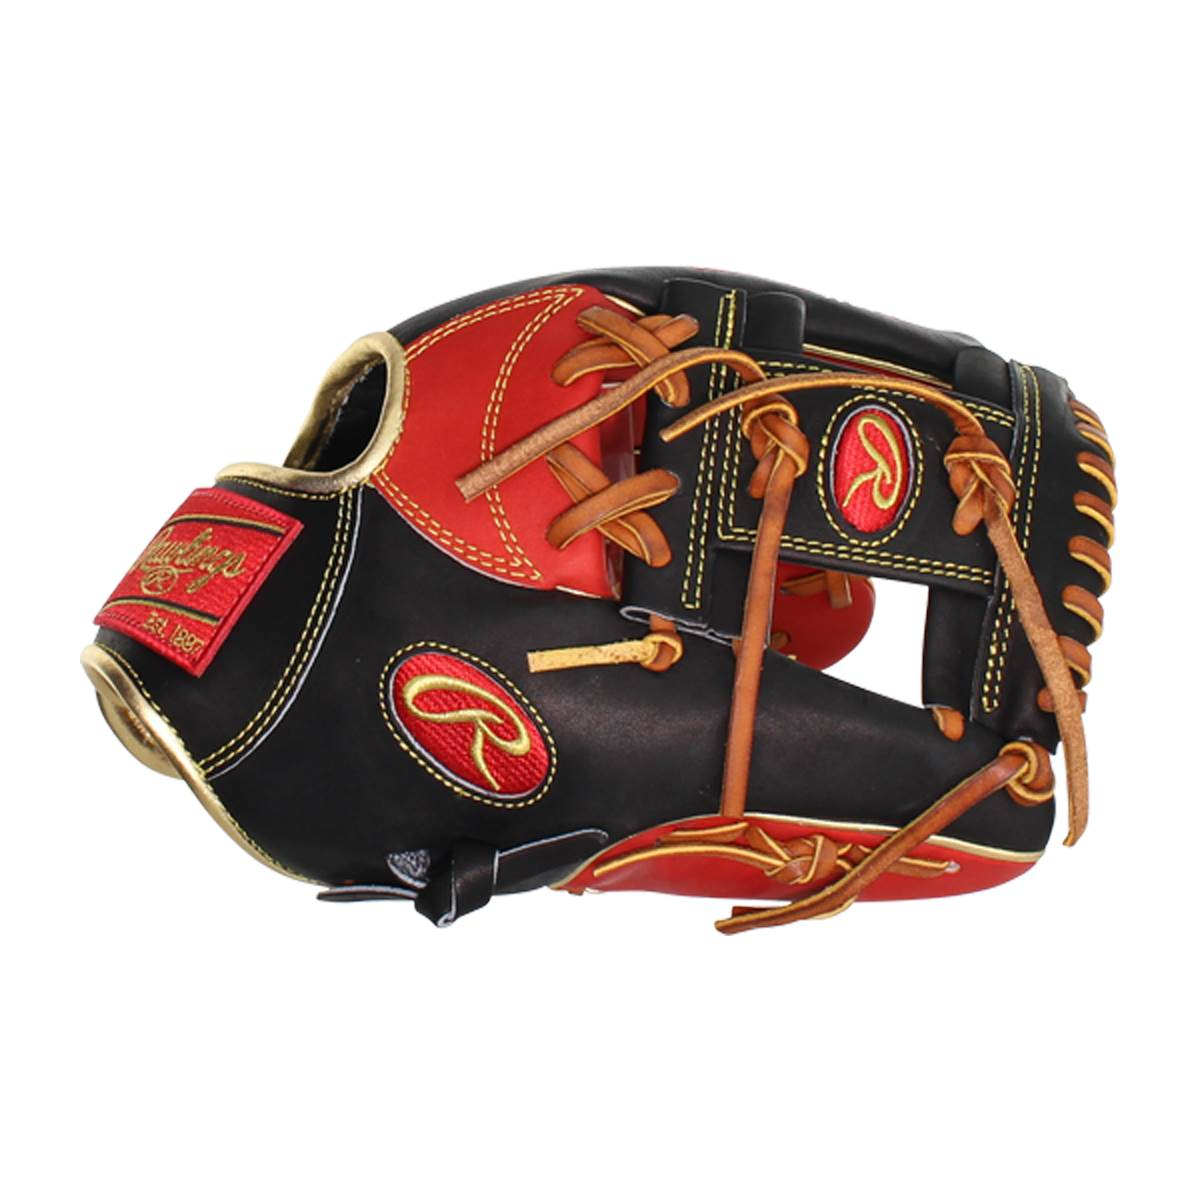 http://www.bestbatdeals.com/images/rawlingsgloves/PRONp4-2sBG-3.jpg